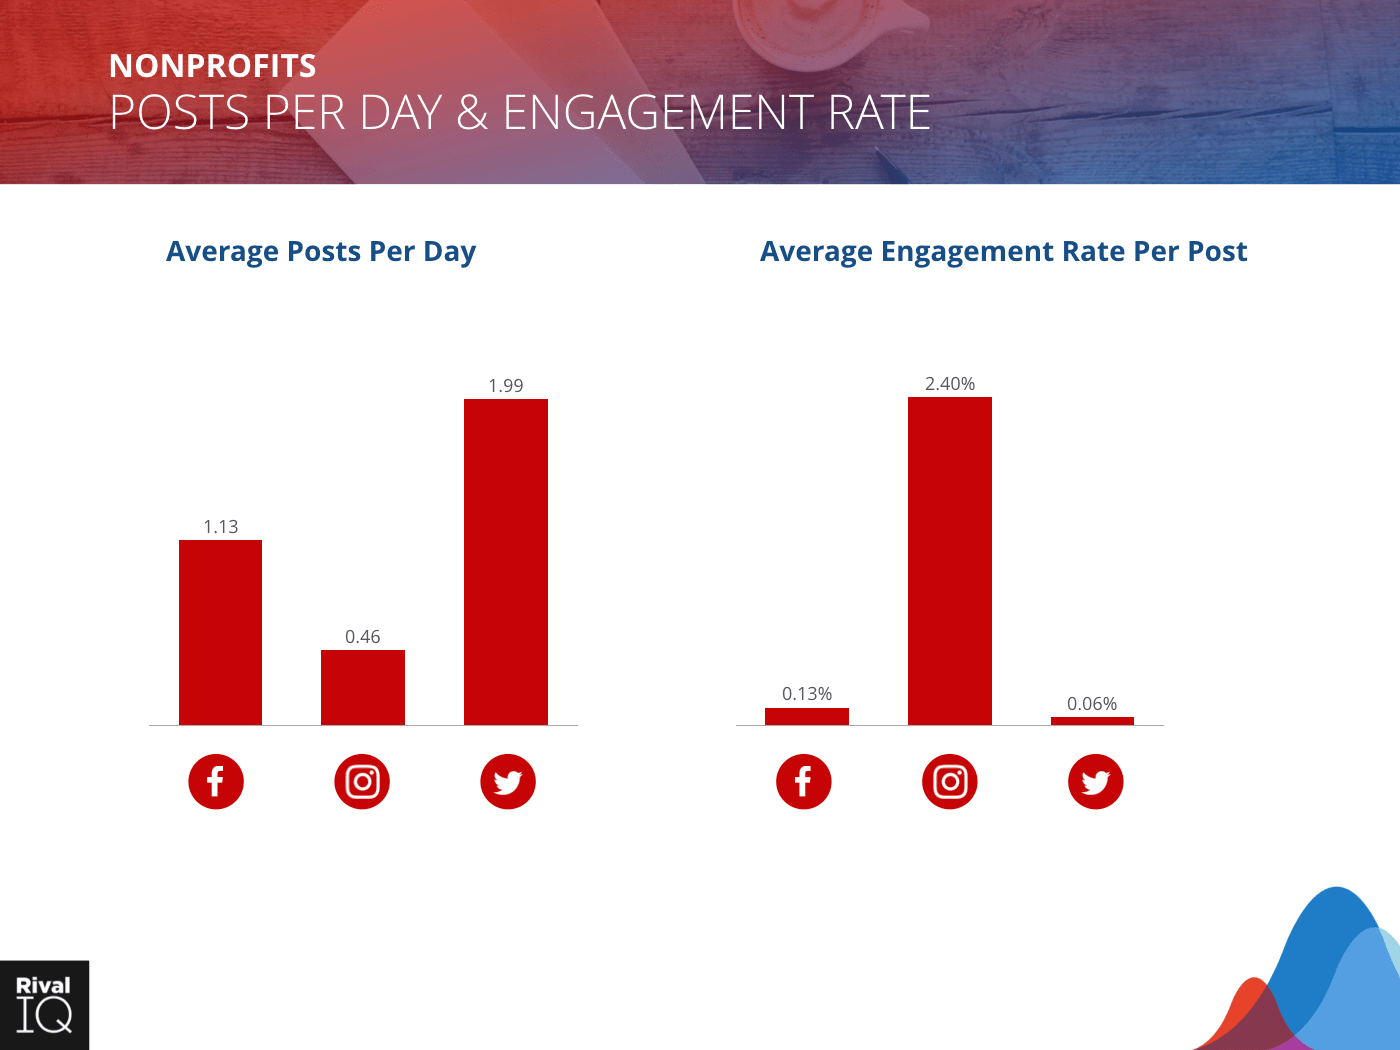 Nonprofit Industry: bar graph, average post per day and engagement rate, all channels